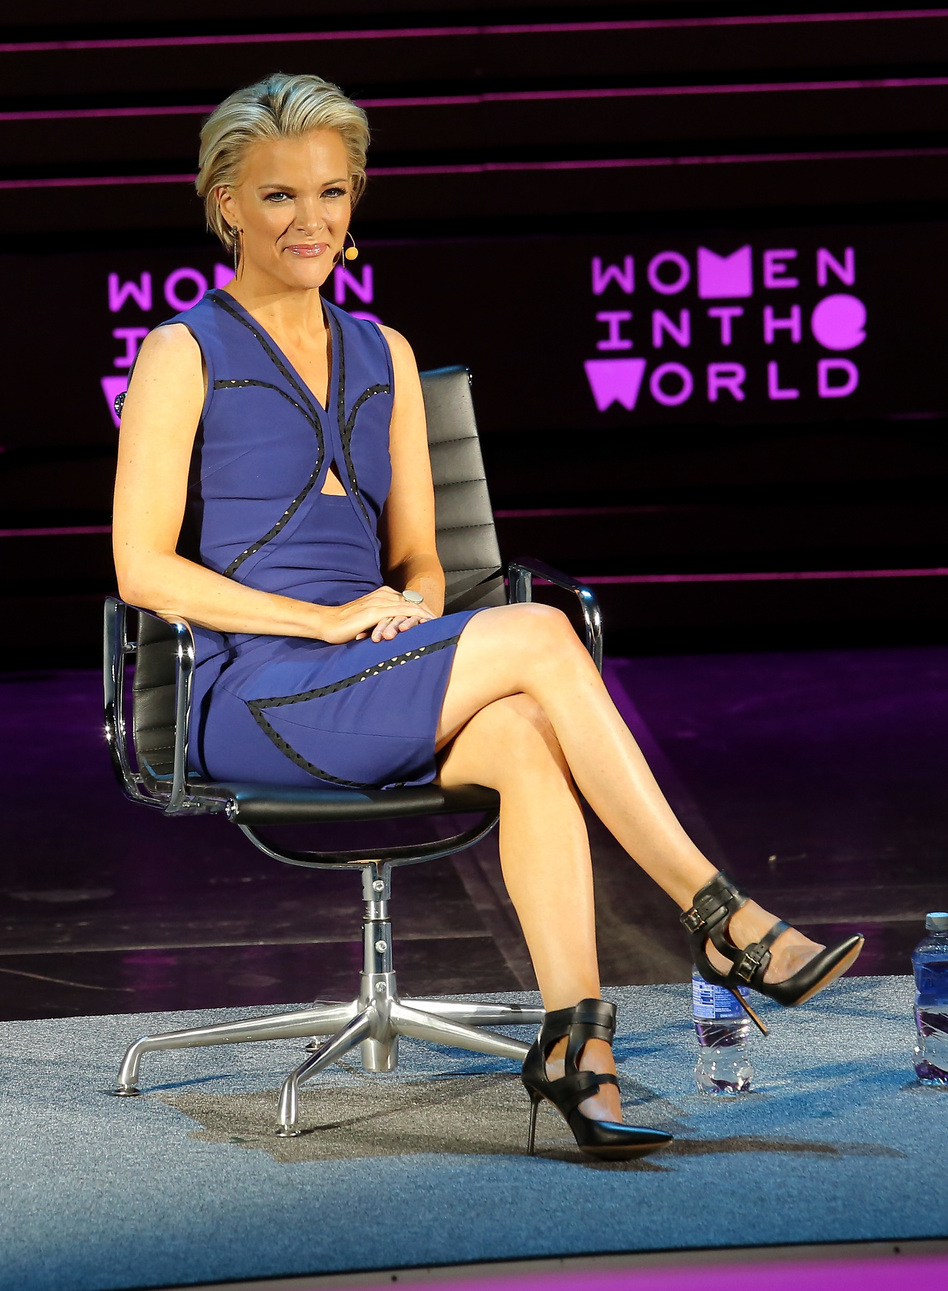 Megyn Kelly speaks onstage at Tina Brown's 7th Annual Women In The World Summit Opening Night on April 6, in New York City. (Jemal Countess/Getty Images)